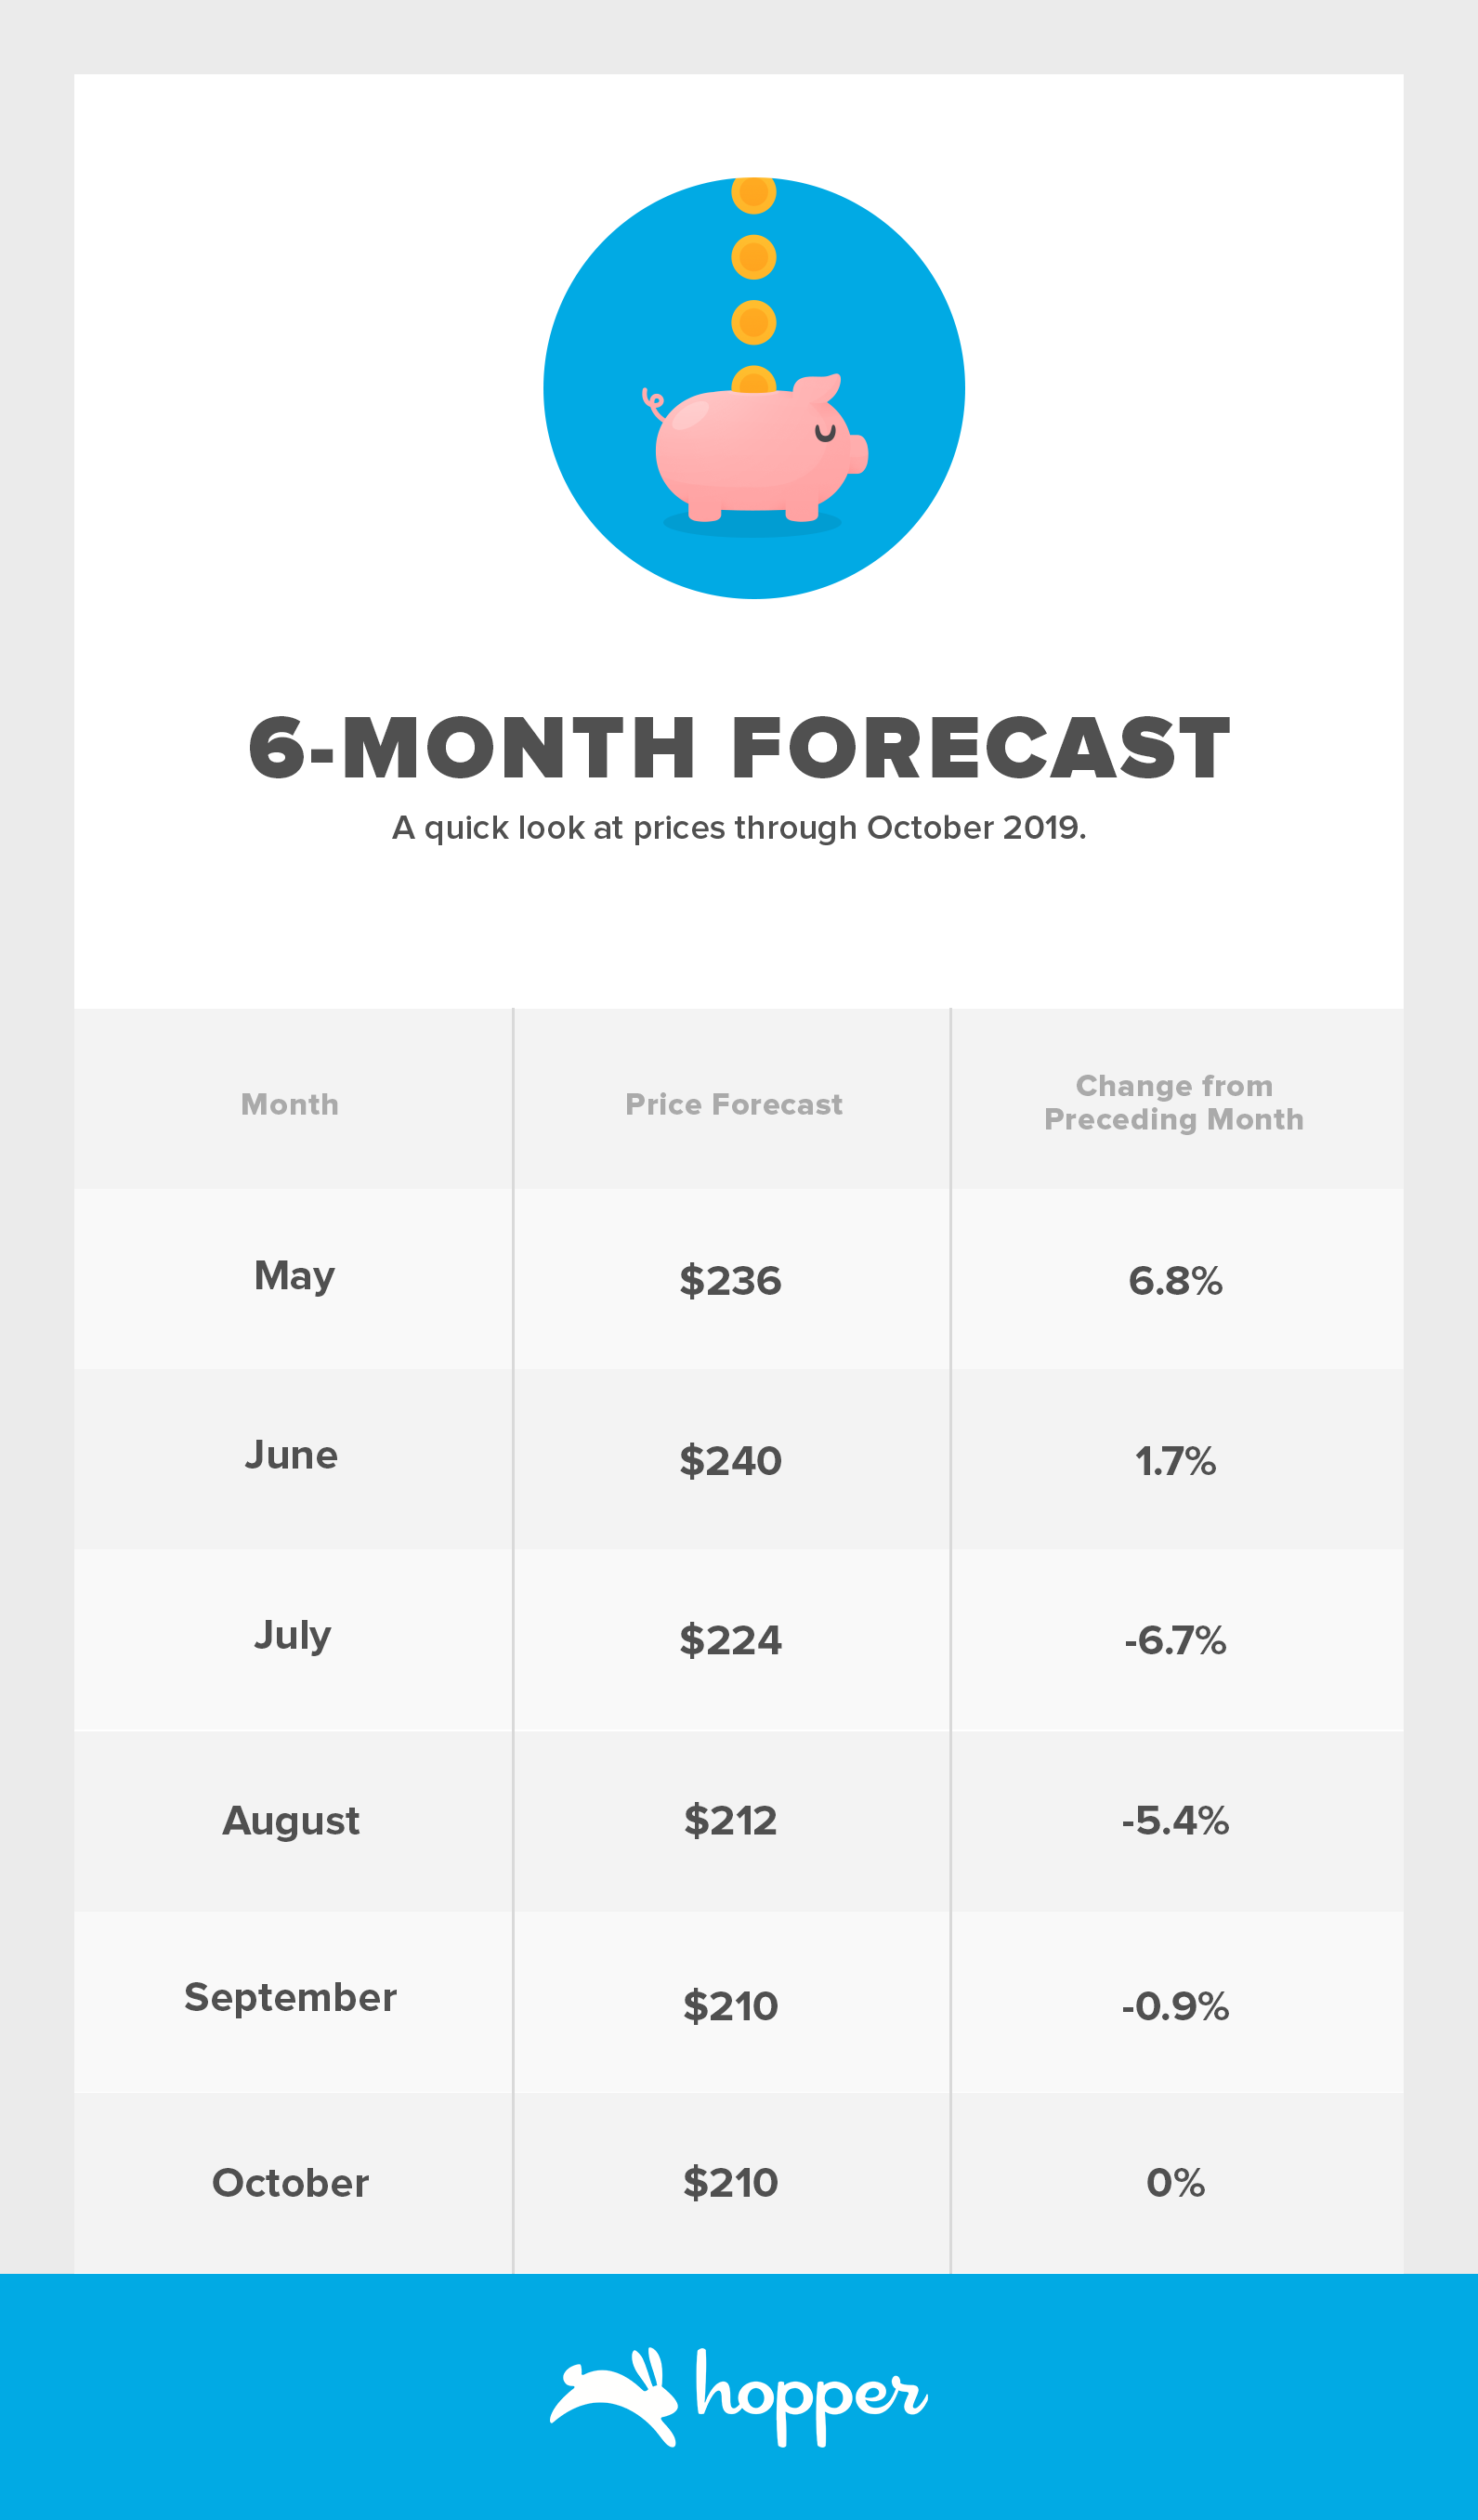 6-Month Forecast: May 2019